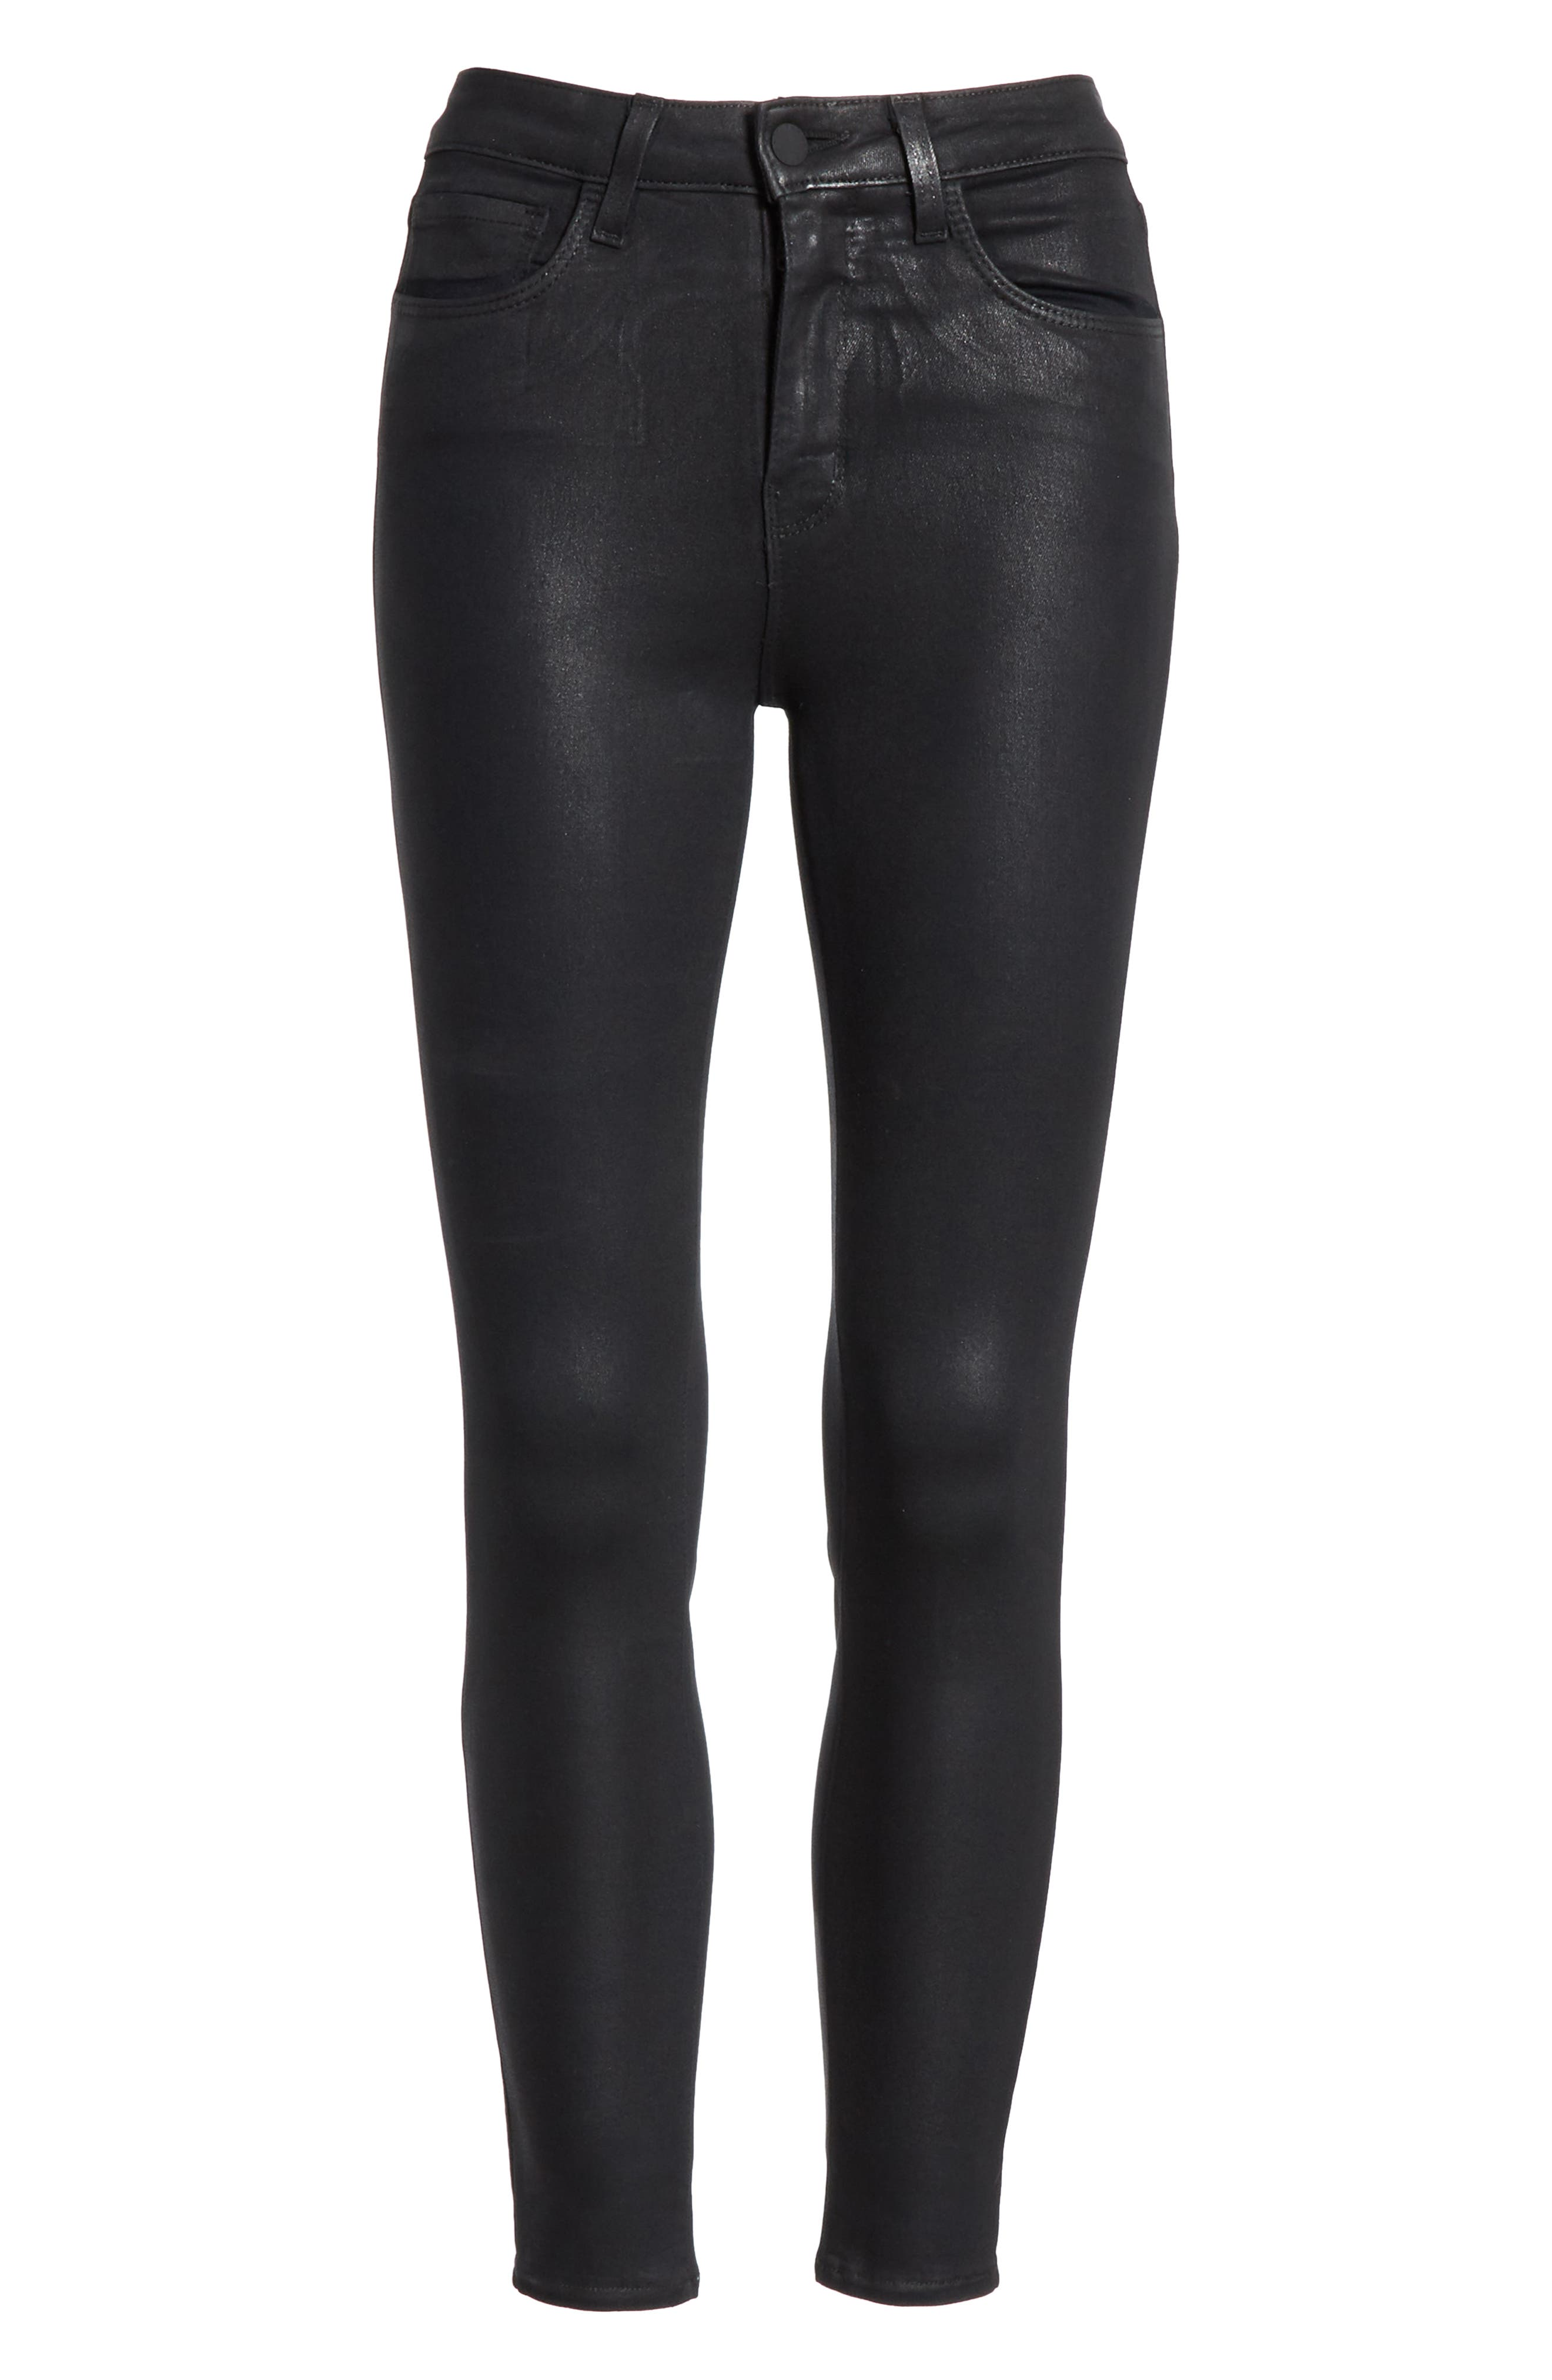 L'AGENCE, Coated High Waist Skinny Jeans, Alternate thumbnail 6, color, BLACK COATED